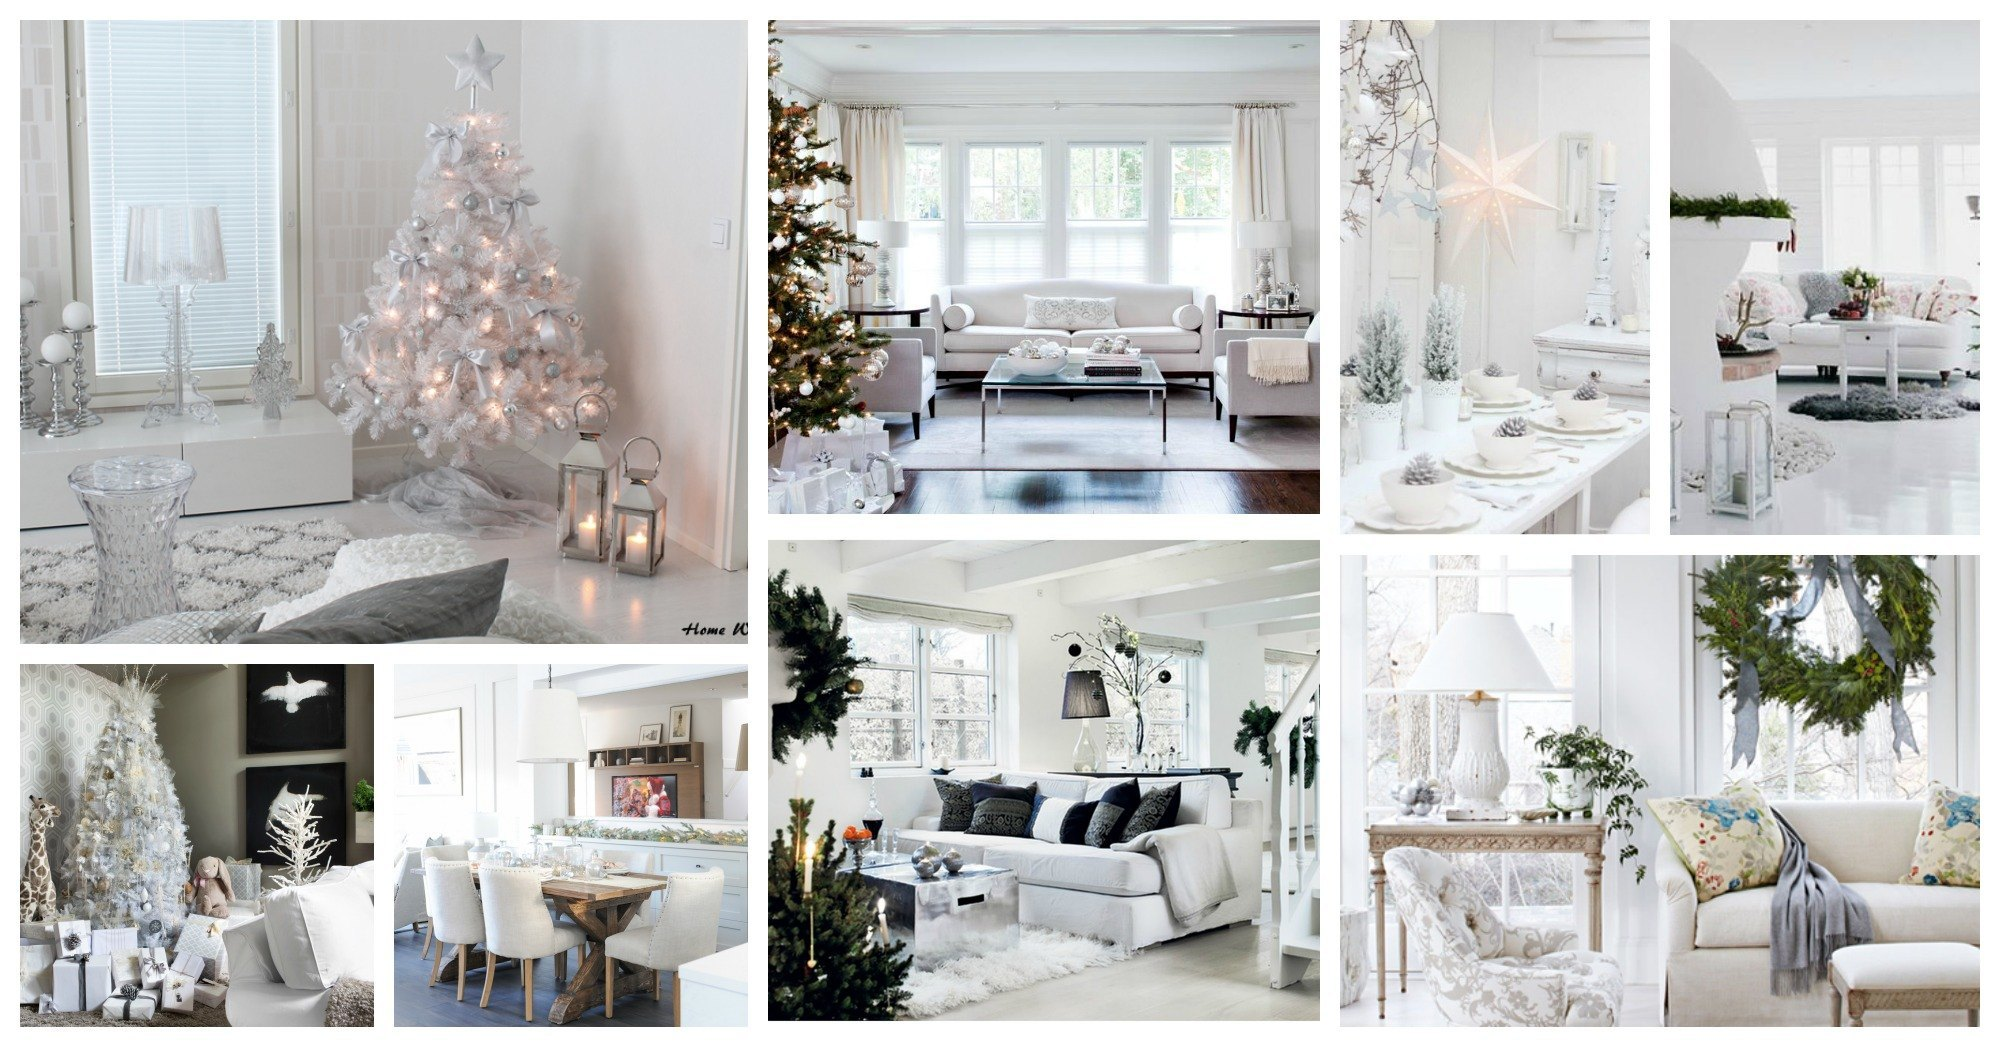 Pure White Interior Designs Decorated In The Christmas Spirit